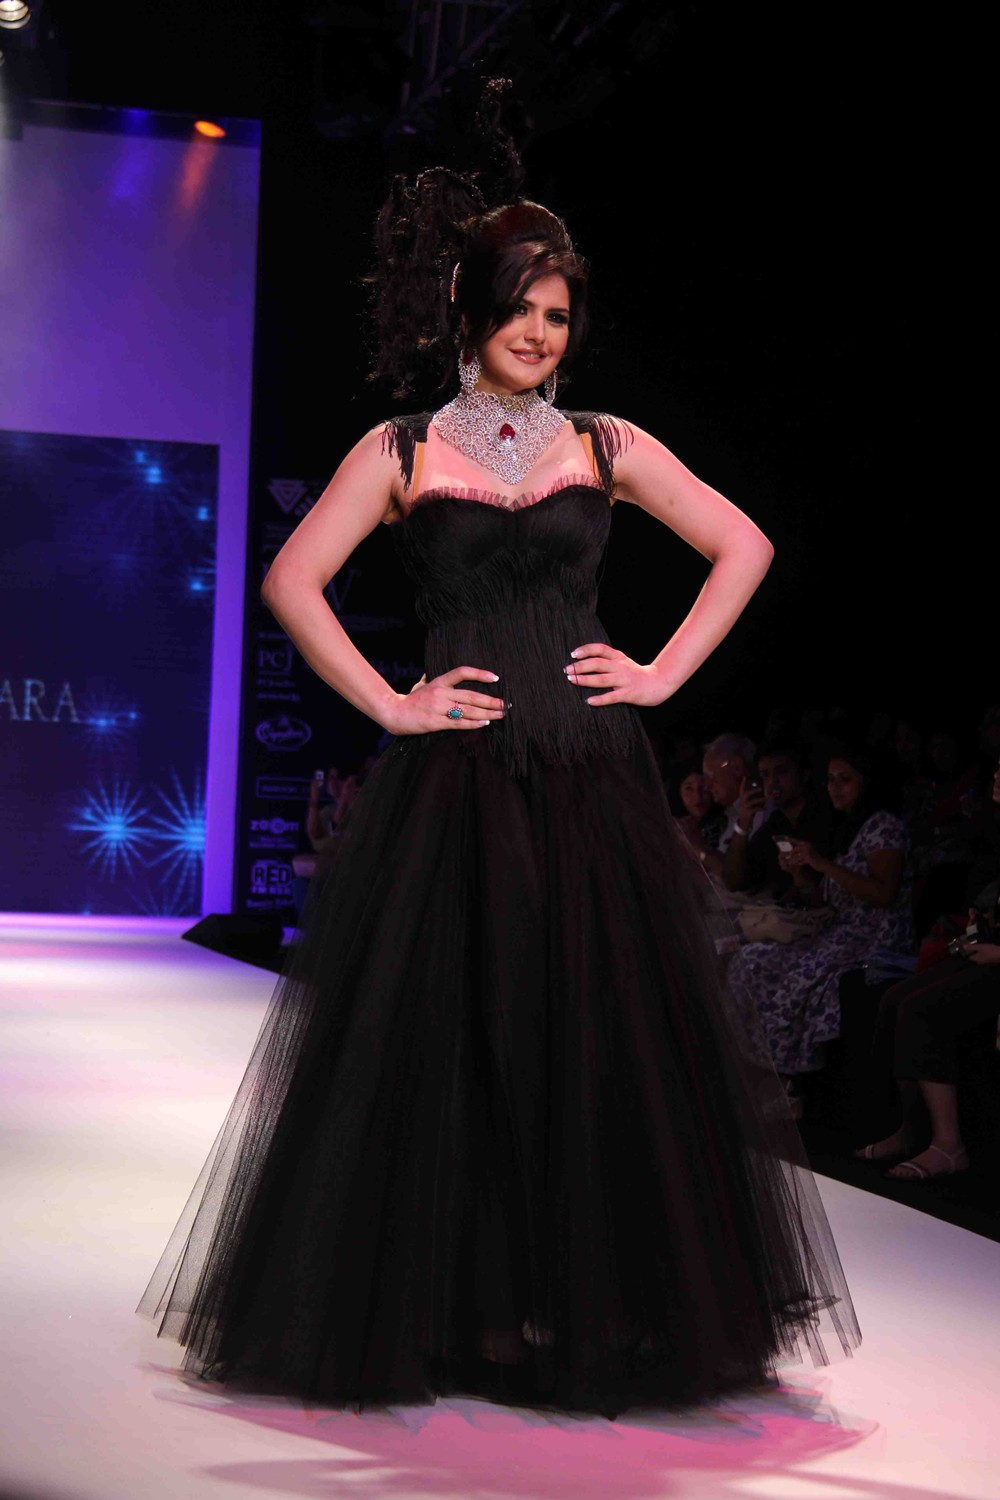 Zarine Khan Ramp Walk At IIJW Day Two Show HQ 11 images  AbyTYCXg